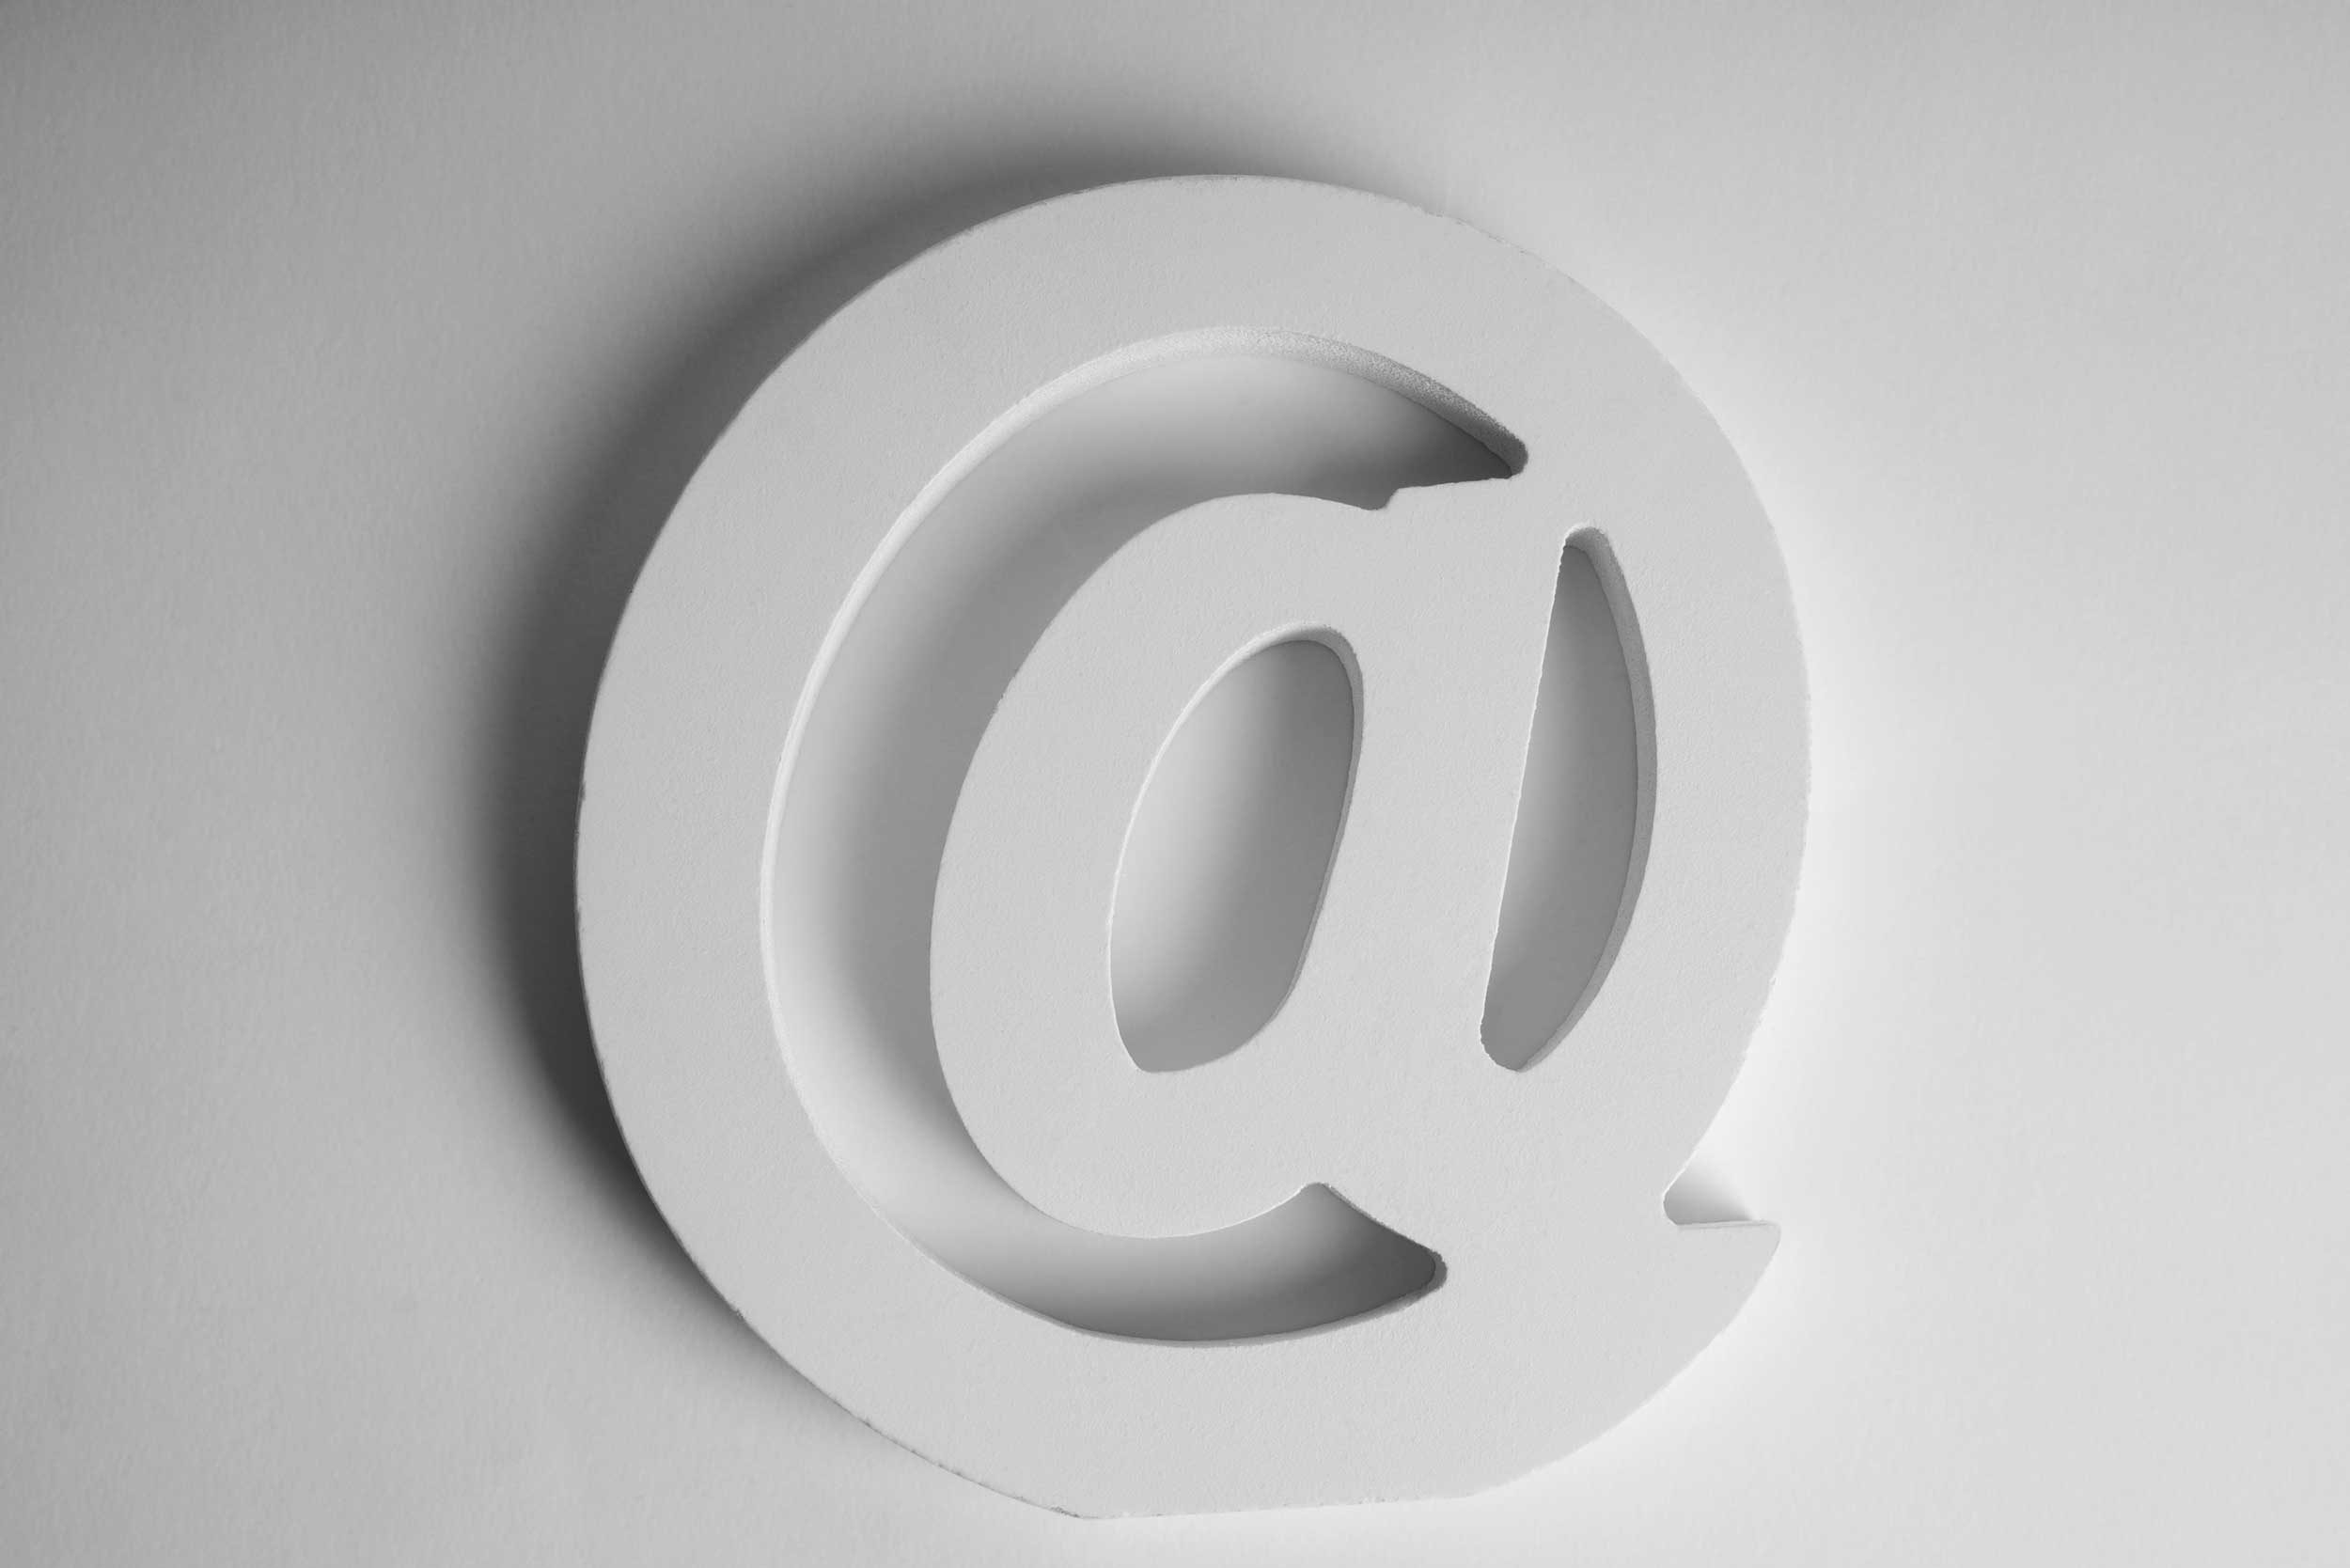 You are currently viewing 4 E-mails You Should NEVER Open